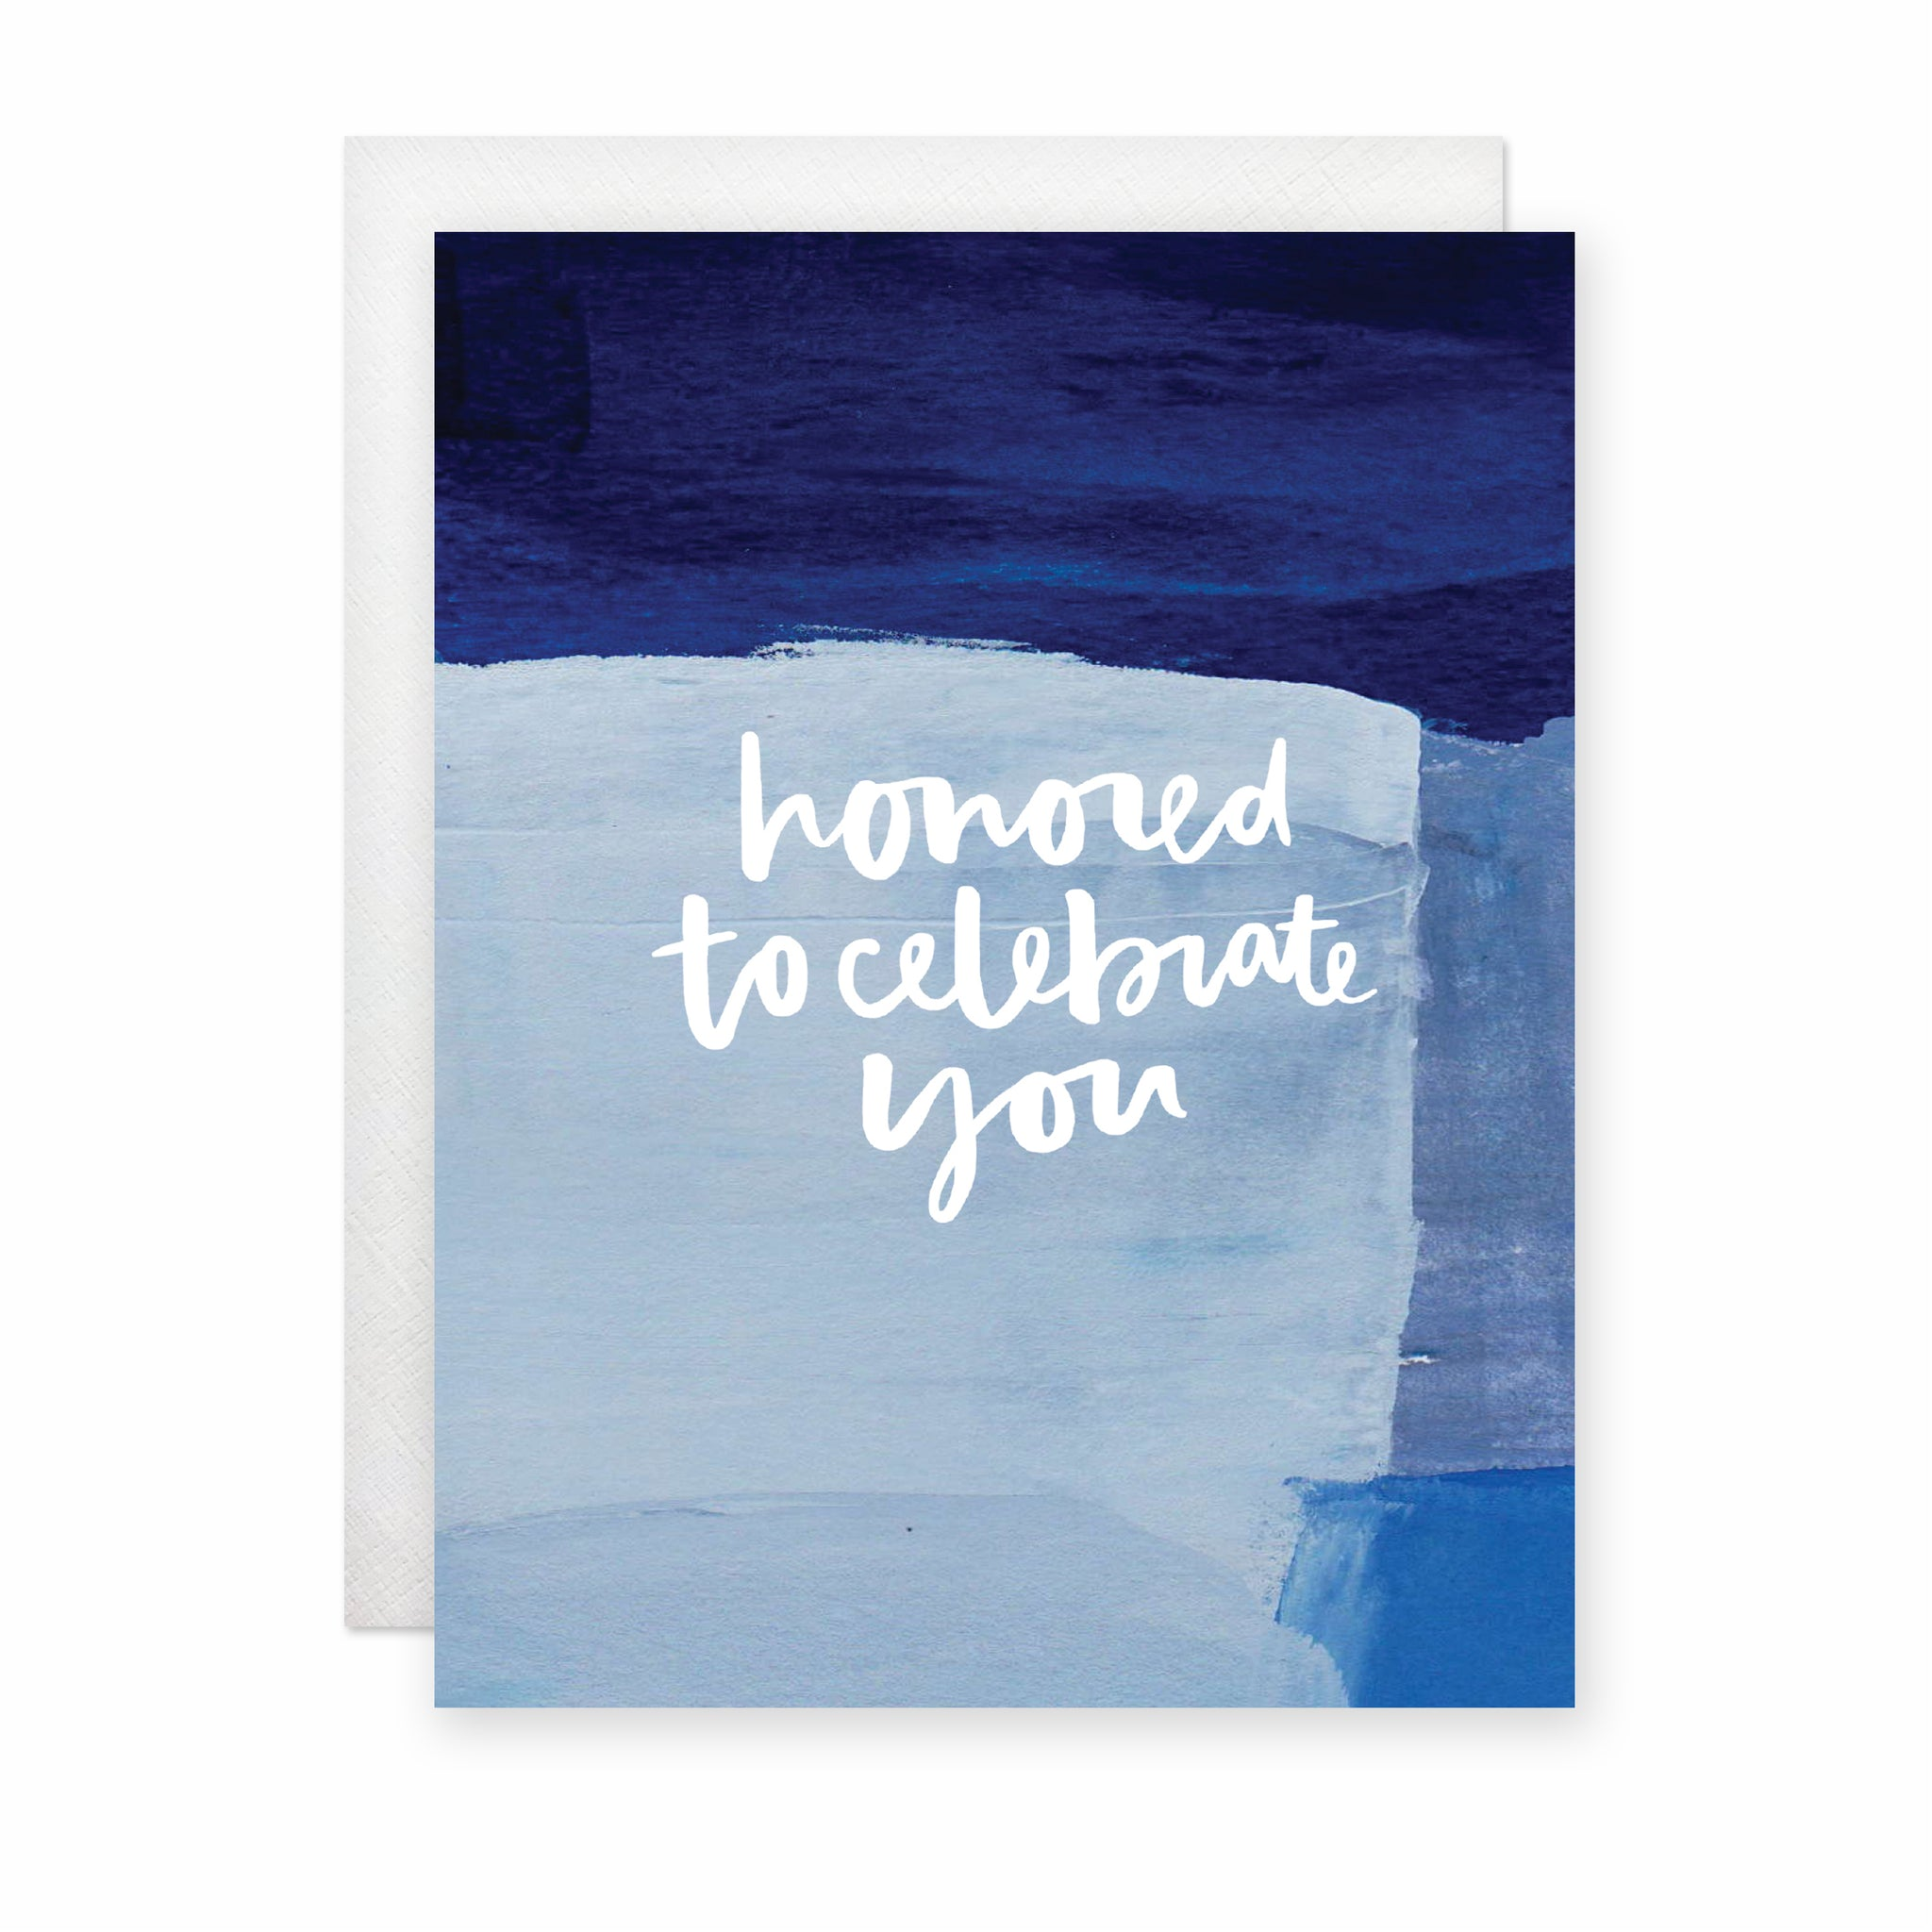 Honored to Celebrate You Card